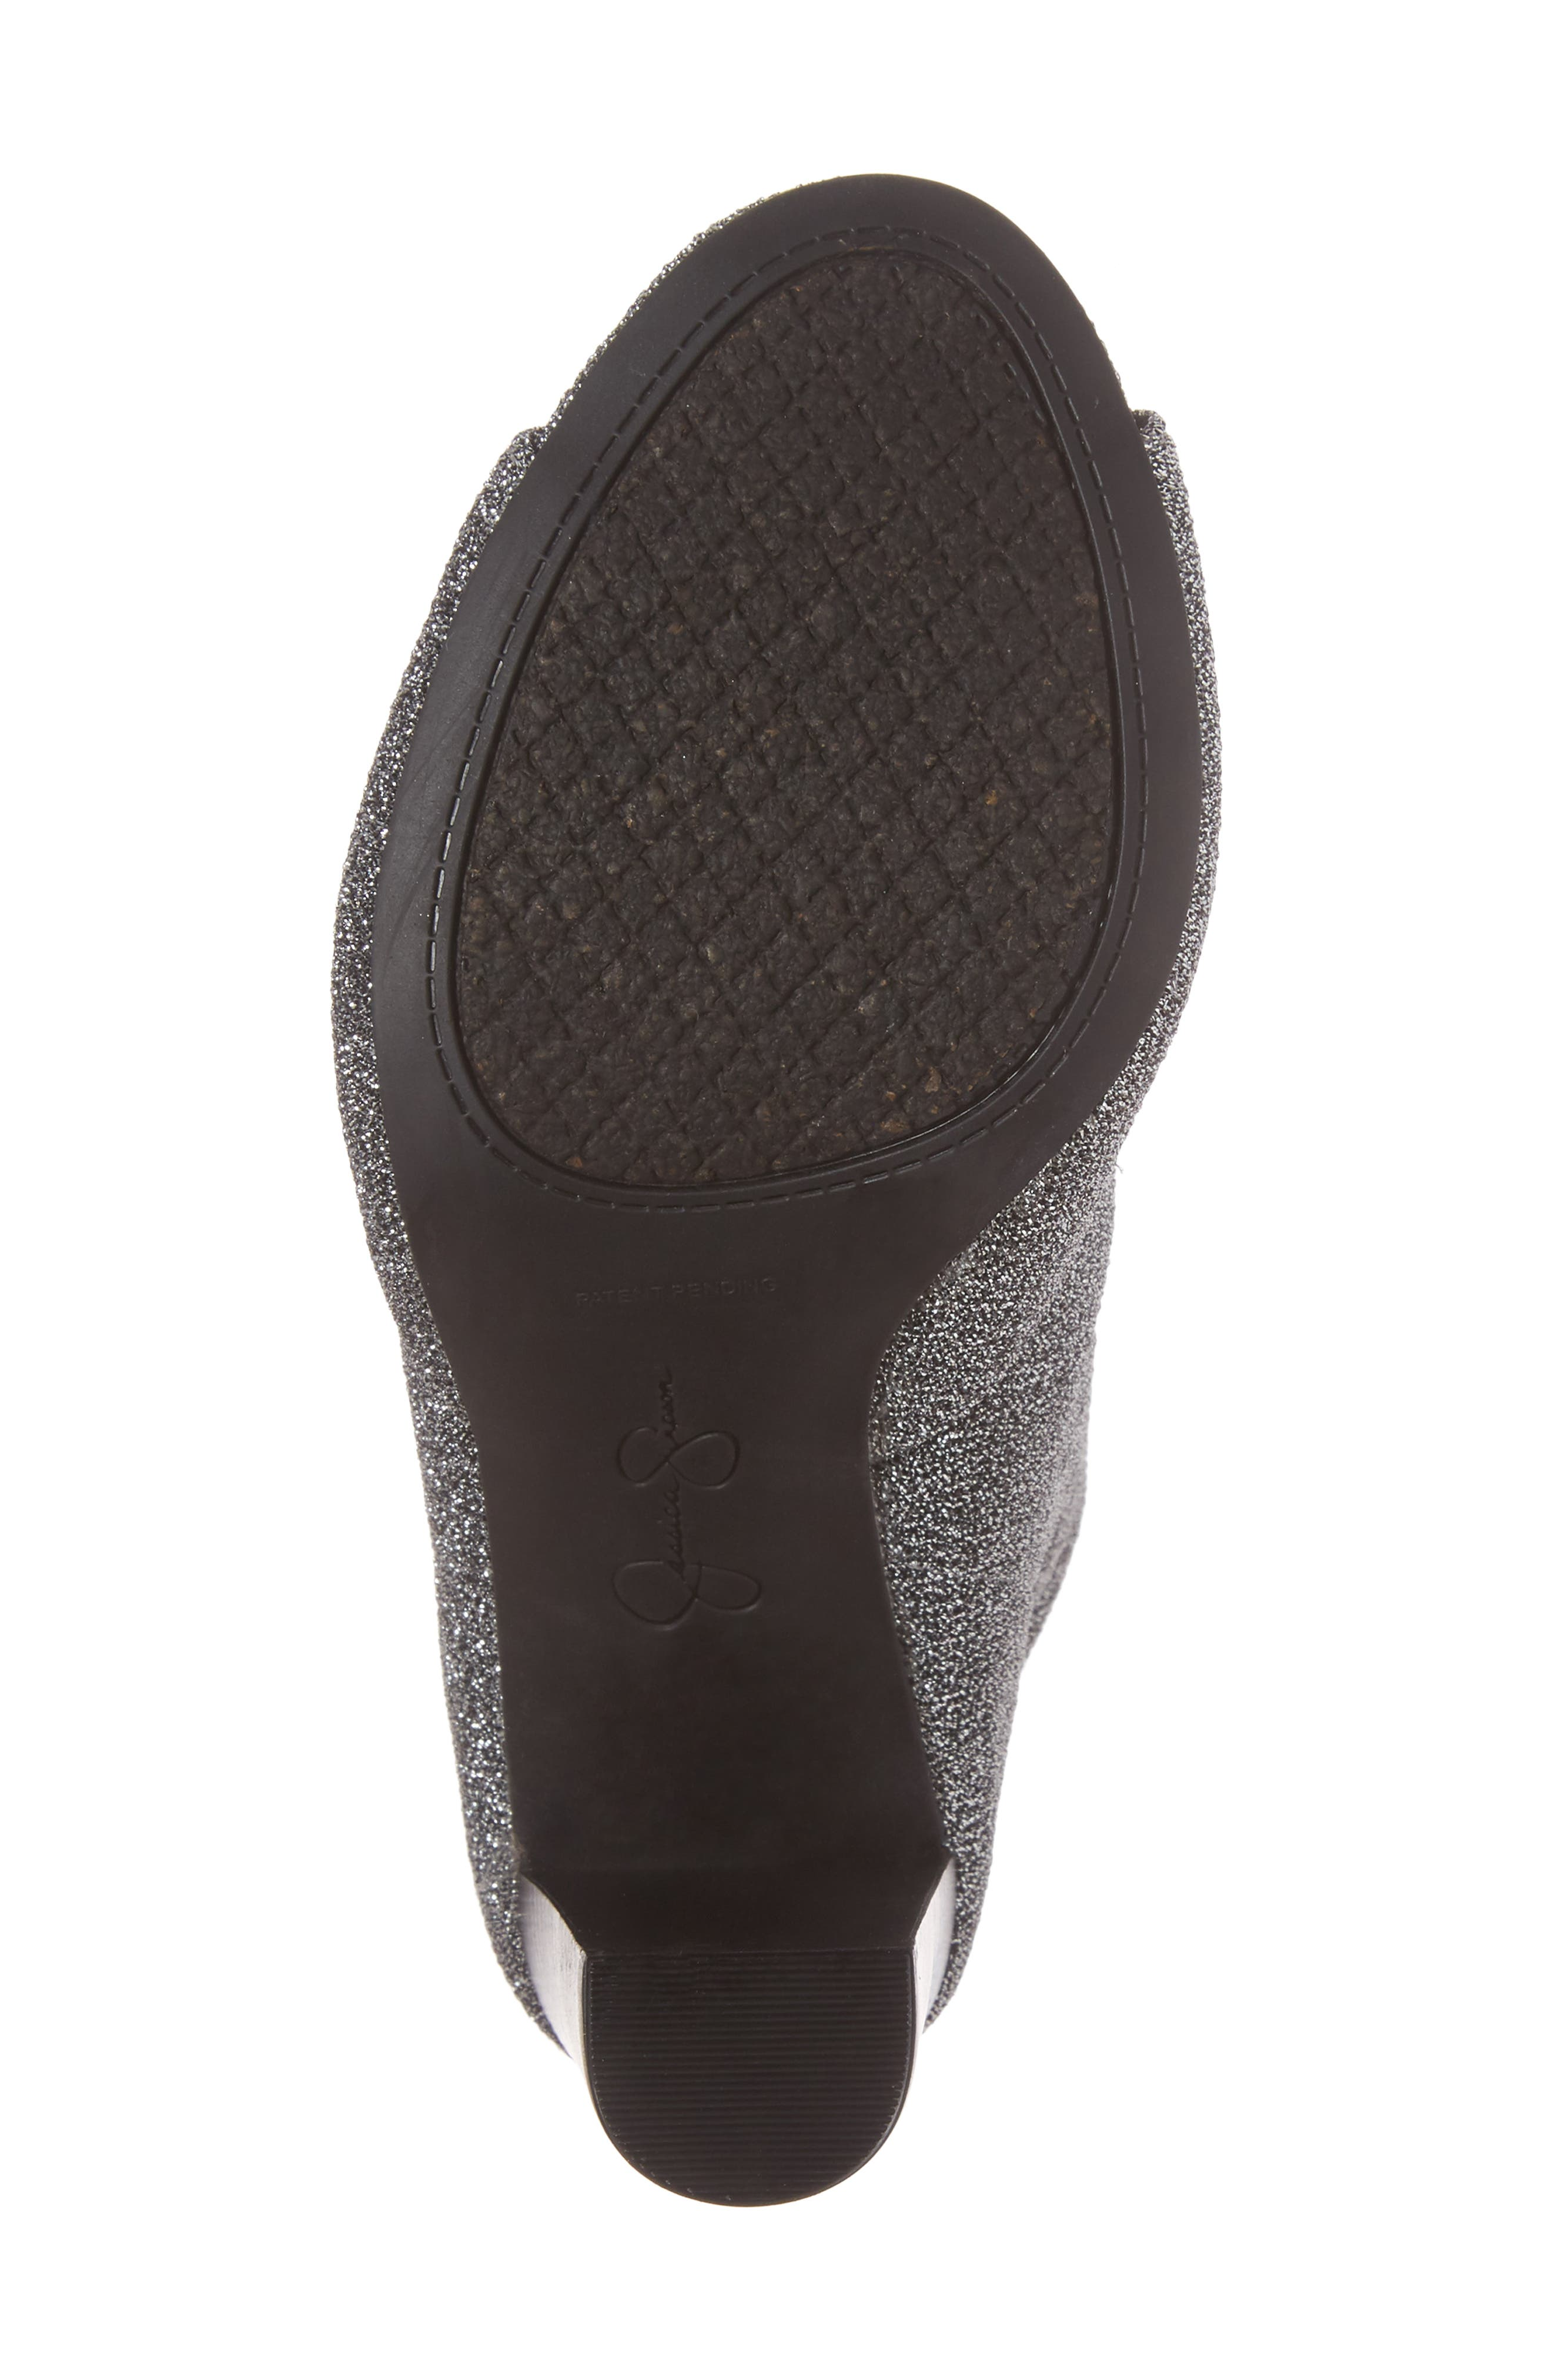 Elara Open-Toe Bootie,                             Alternate thumbnail 6, color,                             Gunmetal